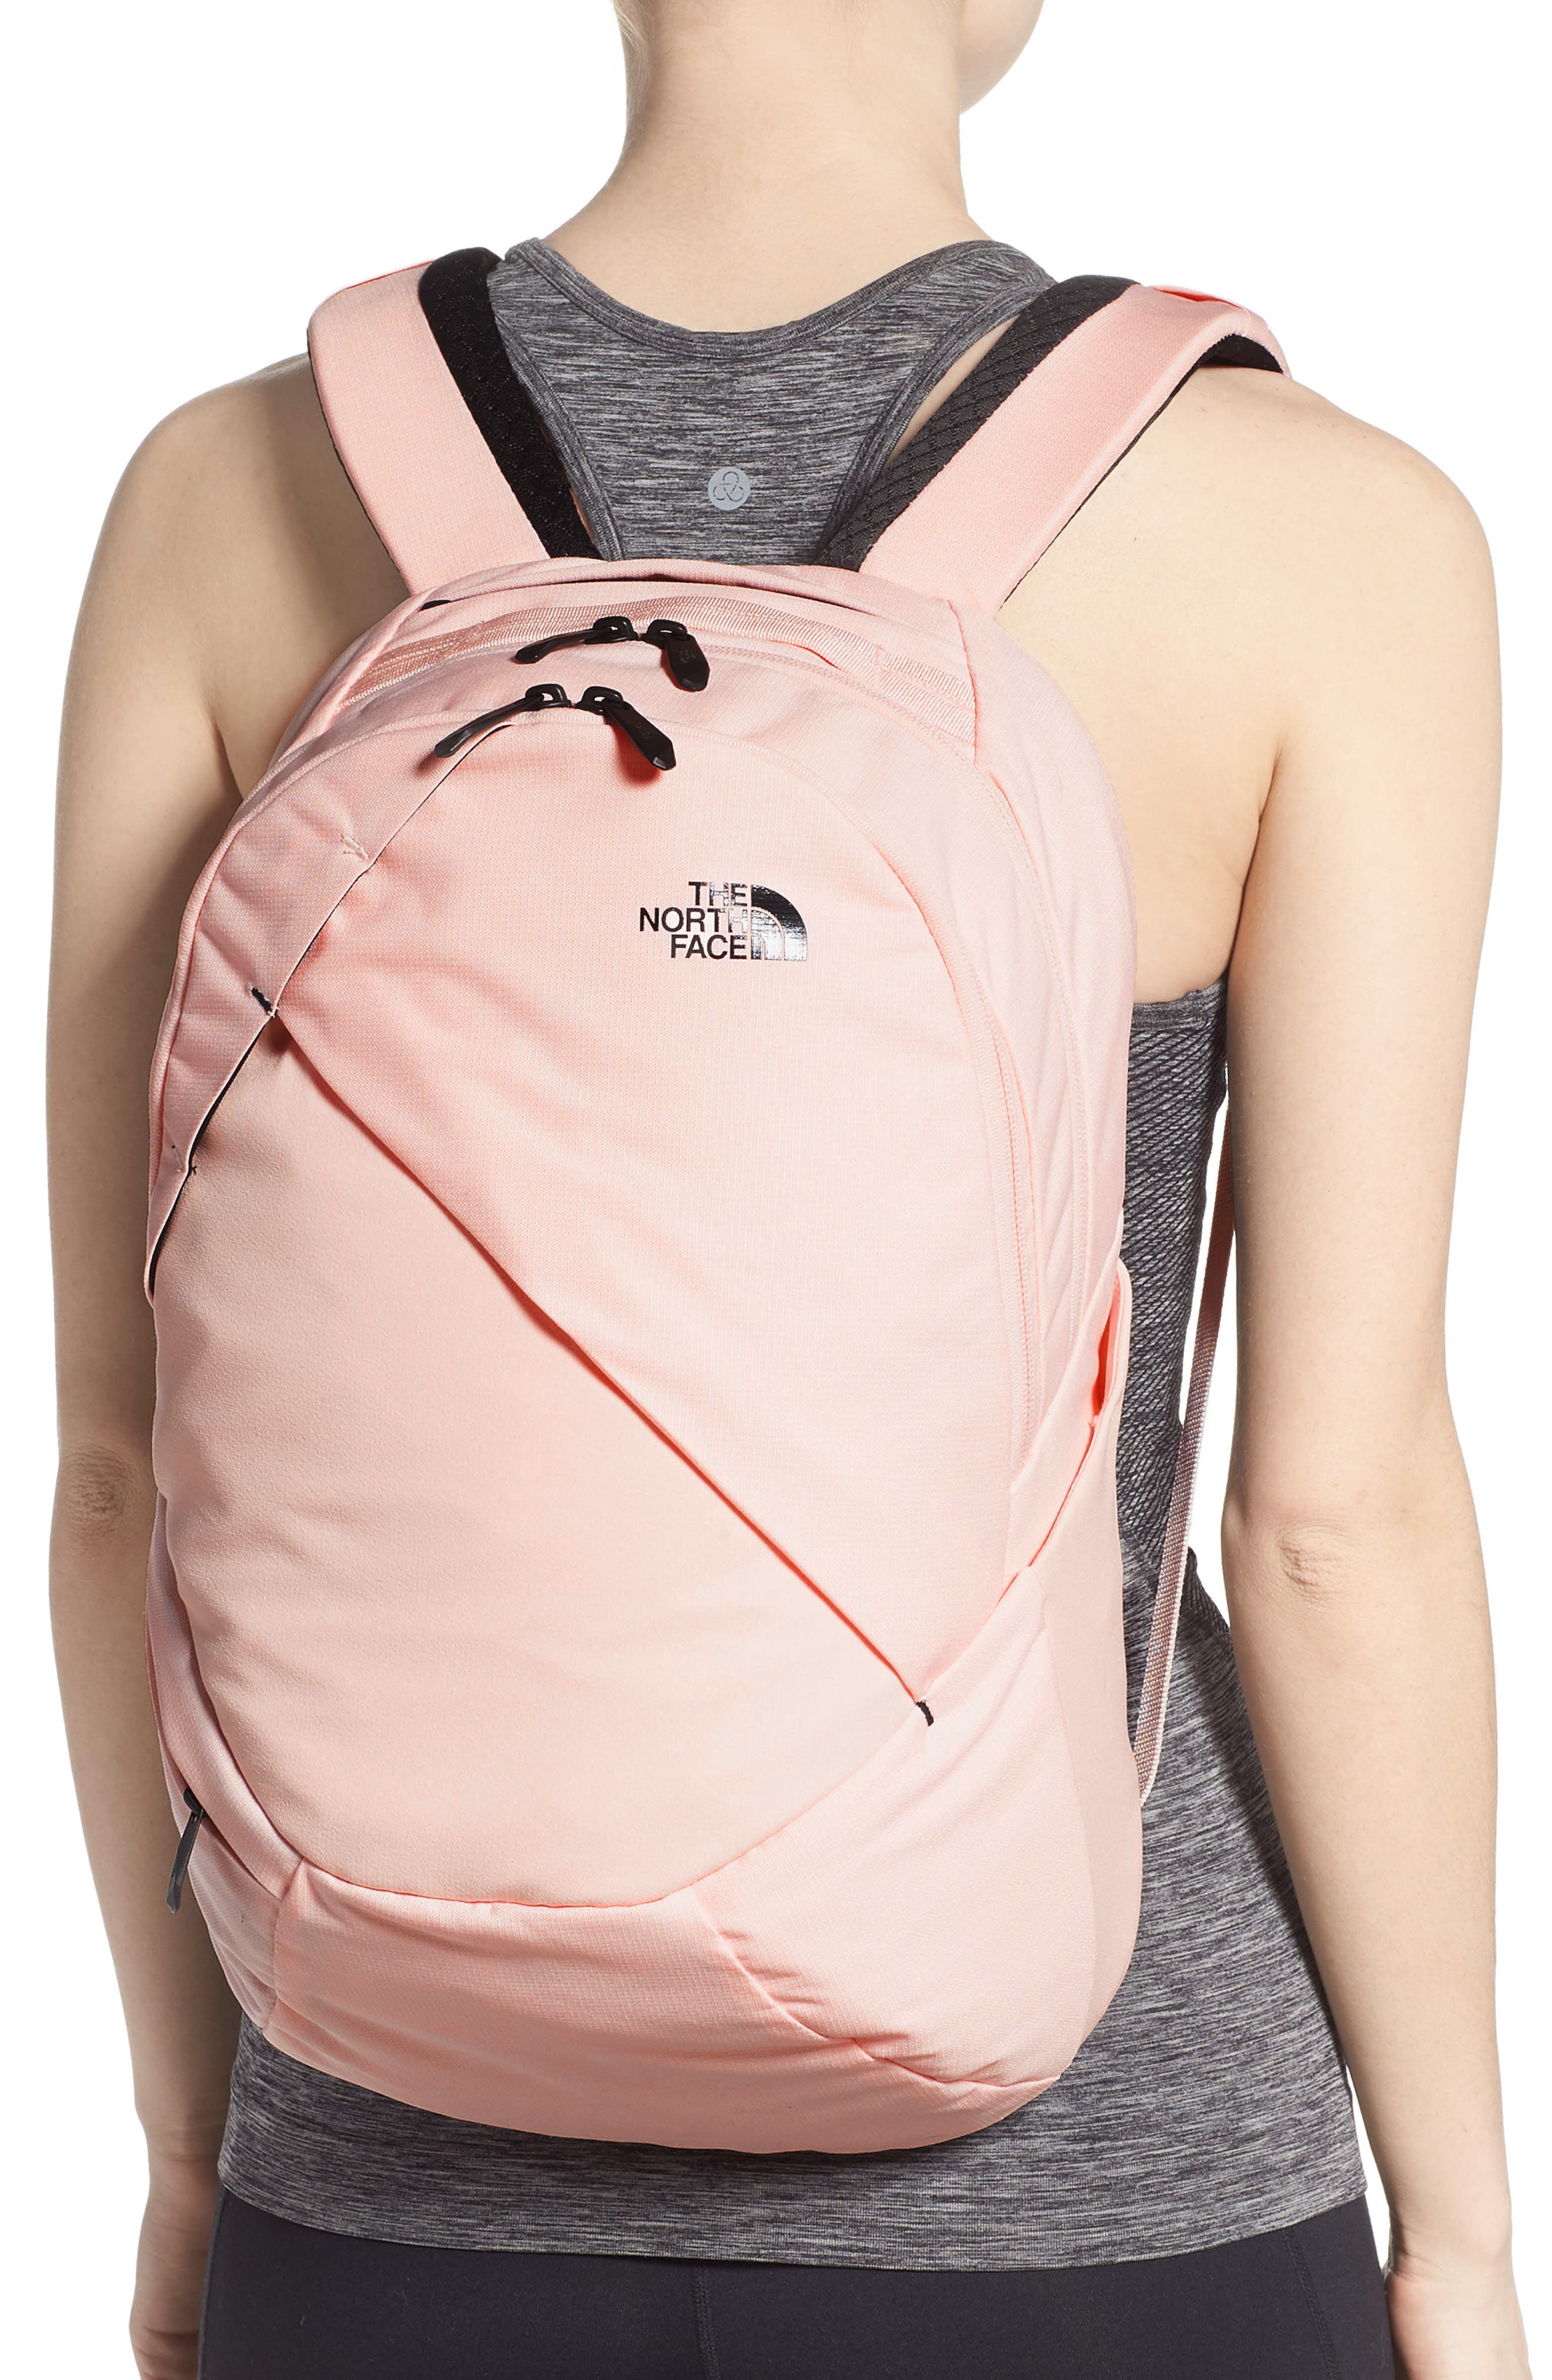 THE NORTH FACE, 'Isabella' Backpack, Alternate thumbnail 2, color, PINK LIGHT HEATHER/ TNF BLACK